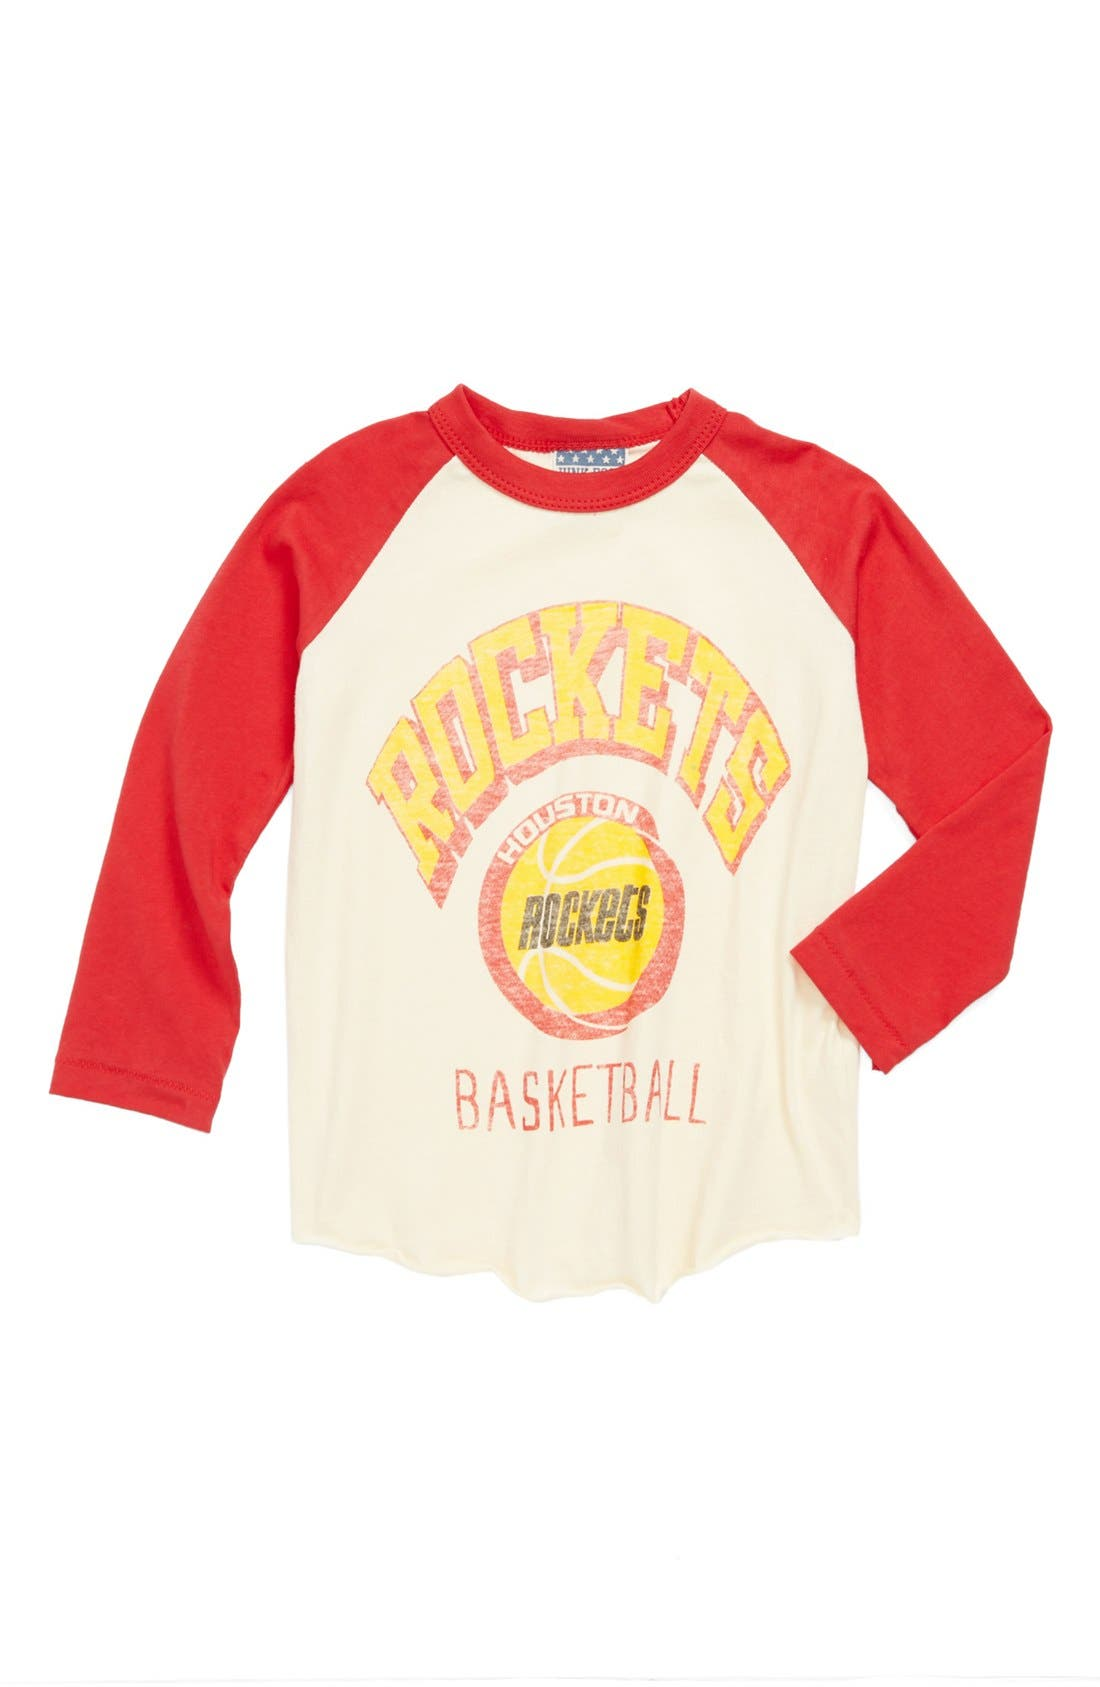 Alternate Image 1 Selected - Junk Food 'Houston Rockets' Long Sleeve T-Shirt (Toddler Boys)